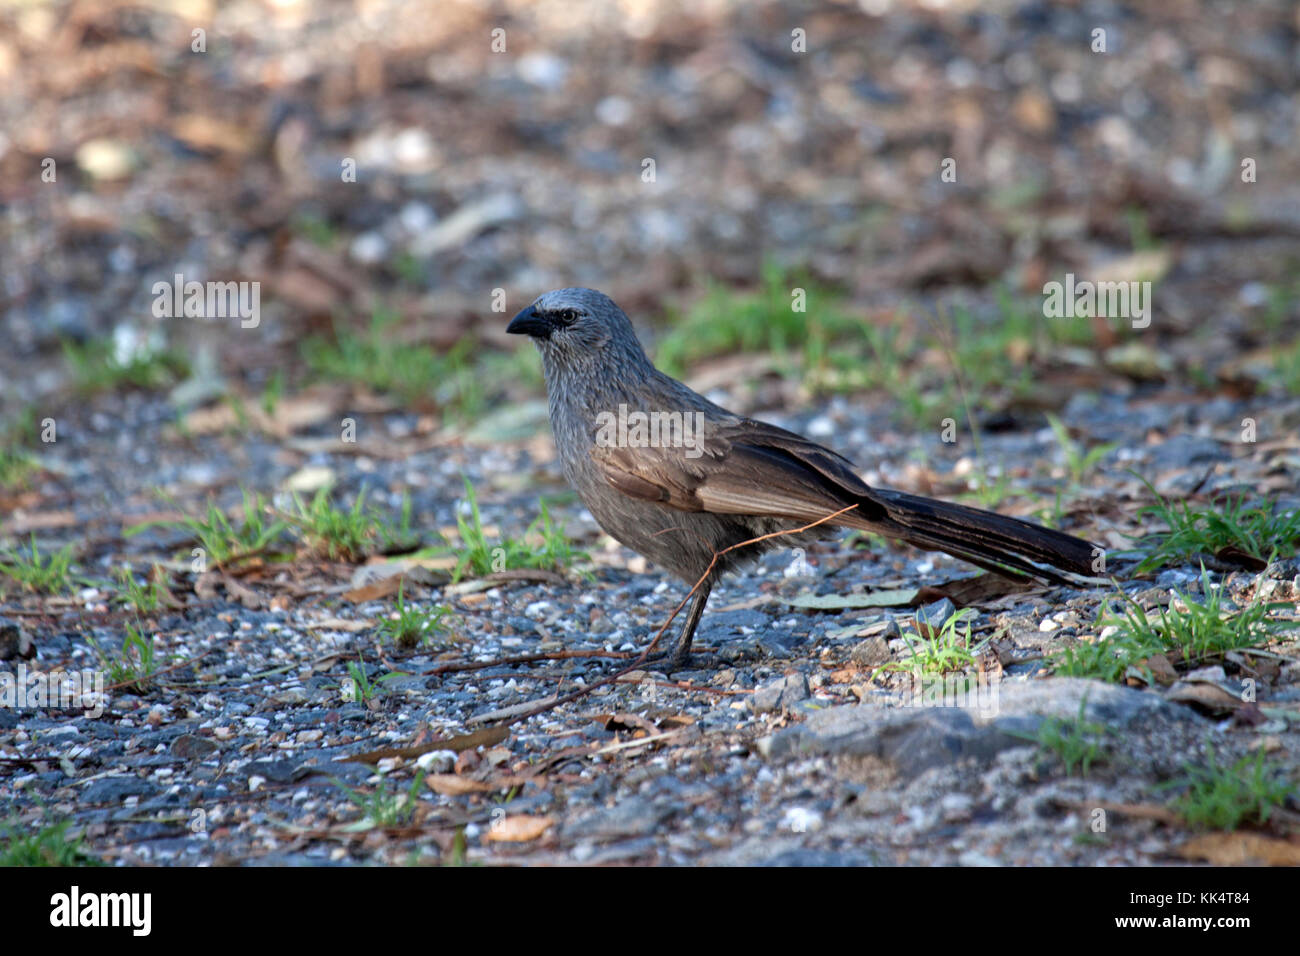 Apostlebird foraging for seeds on the ground in Queensland Australia - Stock Image